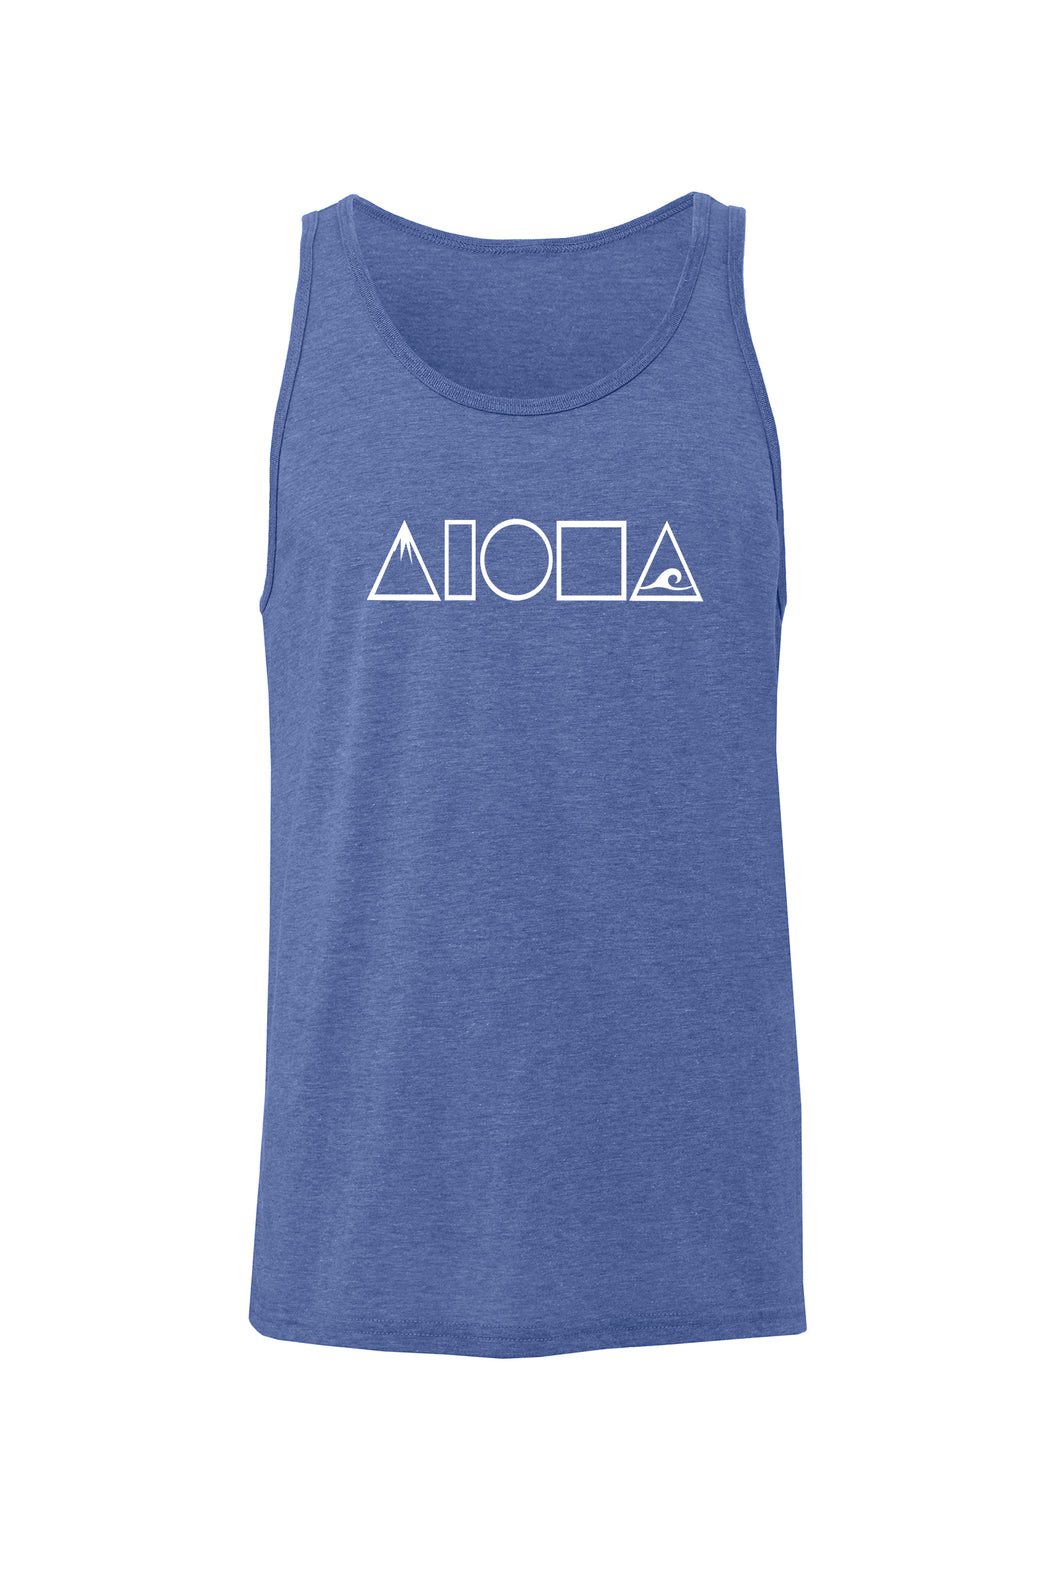 Heather blue unisex triblend tank top printed on front chest with white Aloha Shapes logo